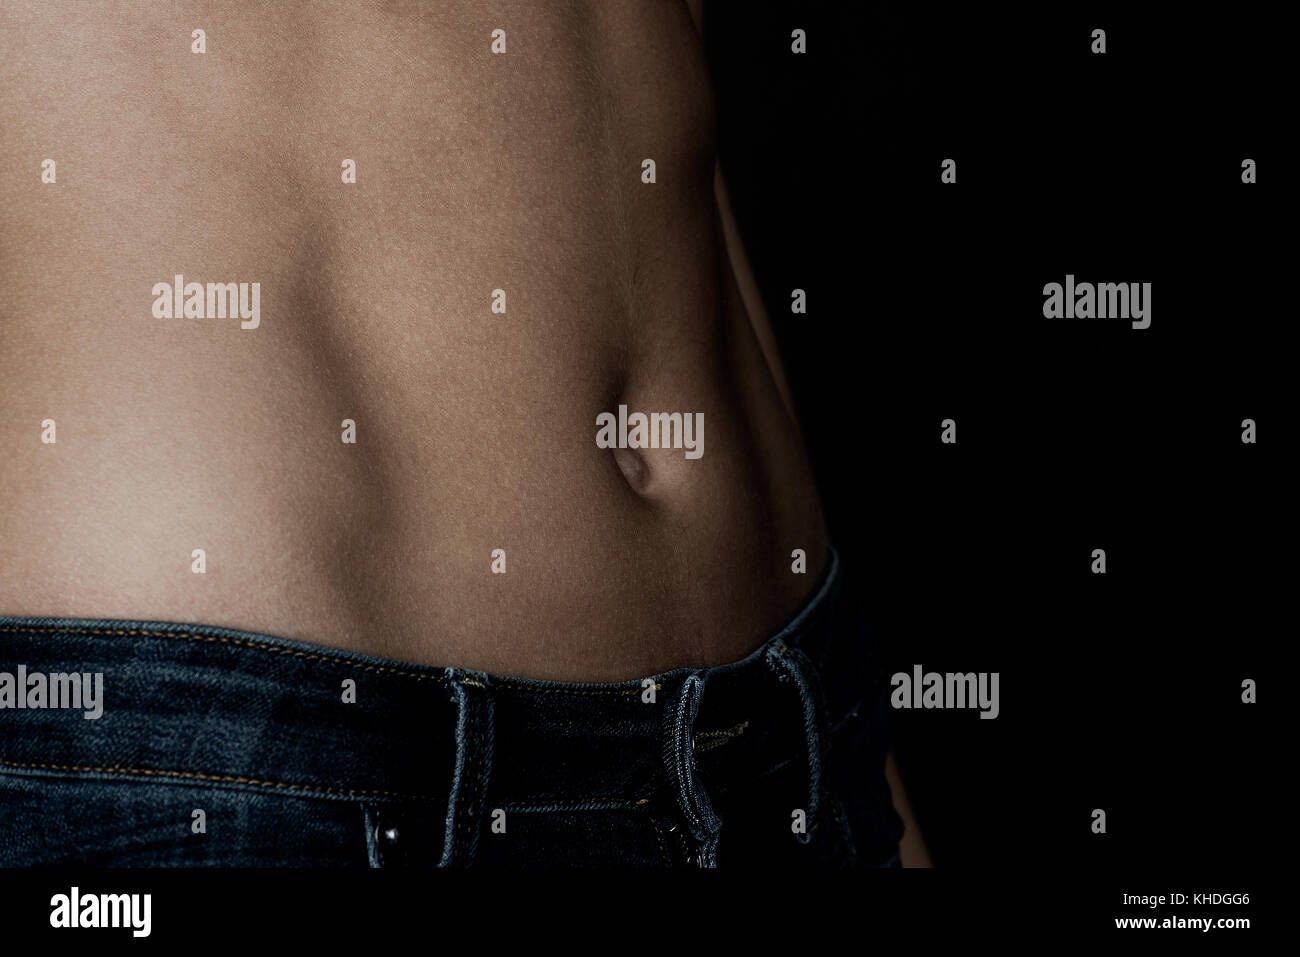 Close-up of woman's bare stomach Stock Photo